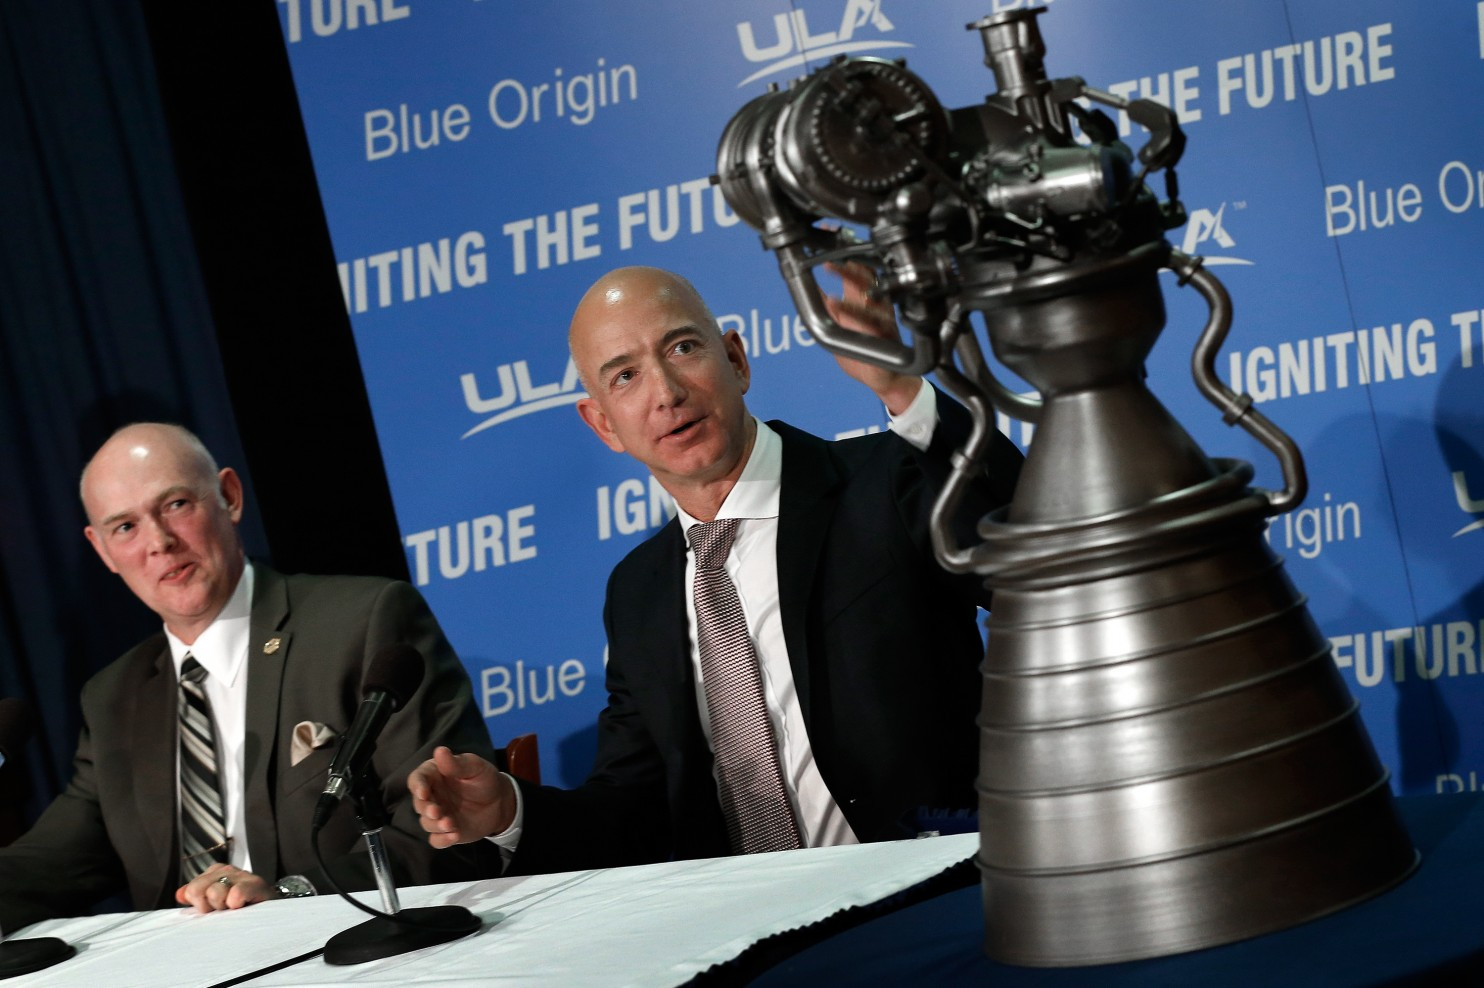 Blue Origin S Latest Rocket Engine For The New Glenn Is Finally Complete